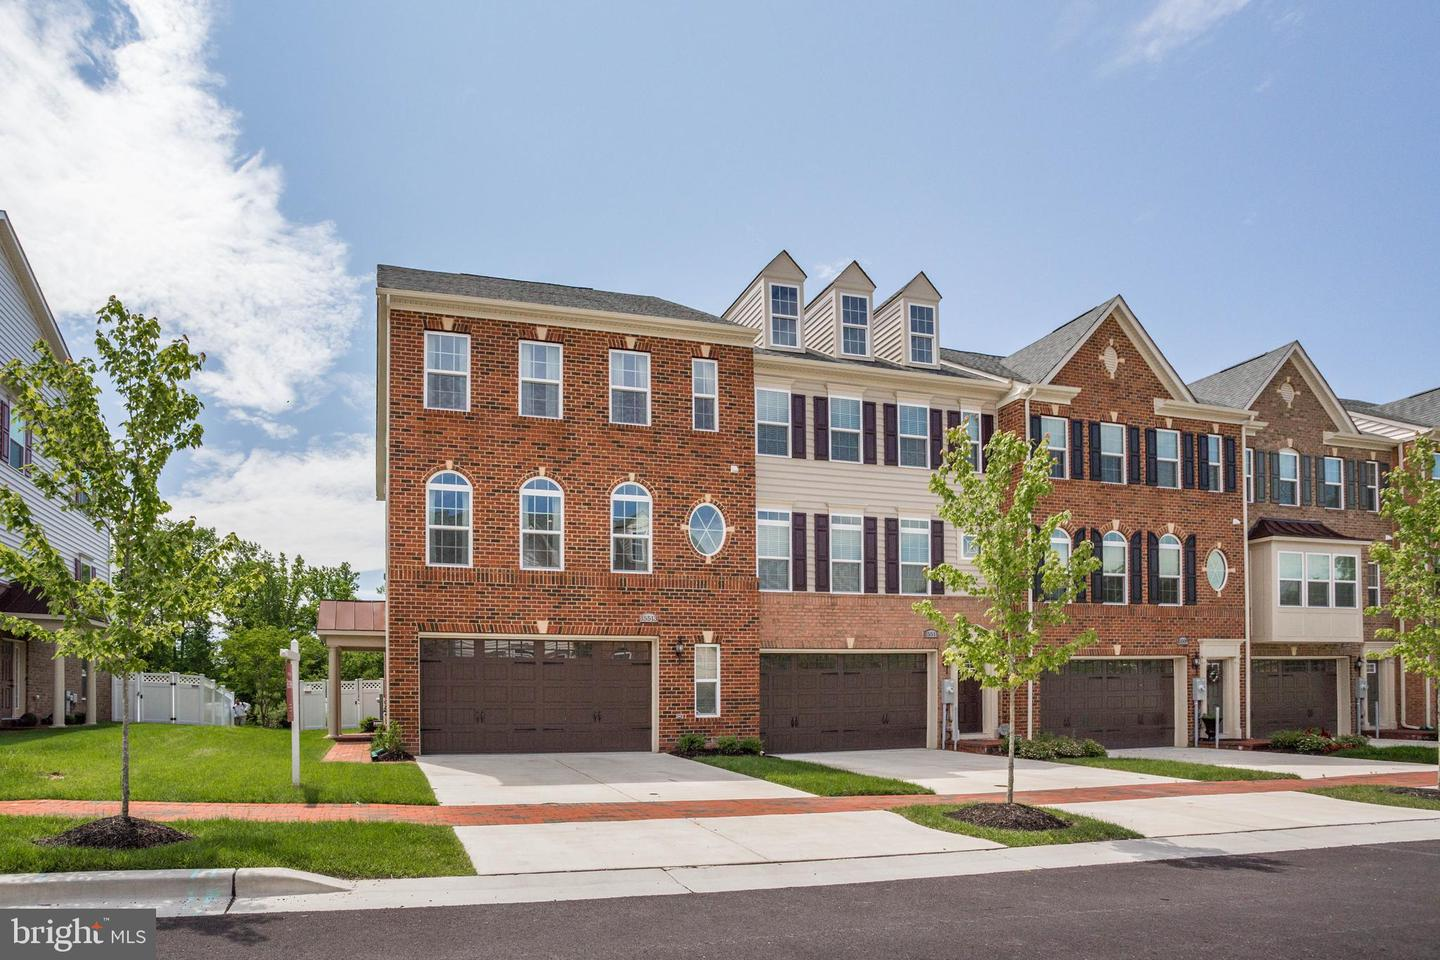 15513 SUNNINGDALE PLACE, UPPER MARLBORO, Maryland